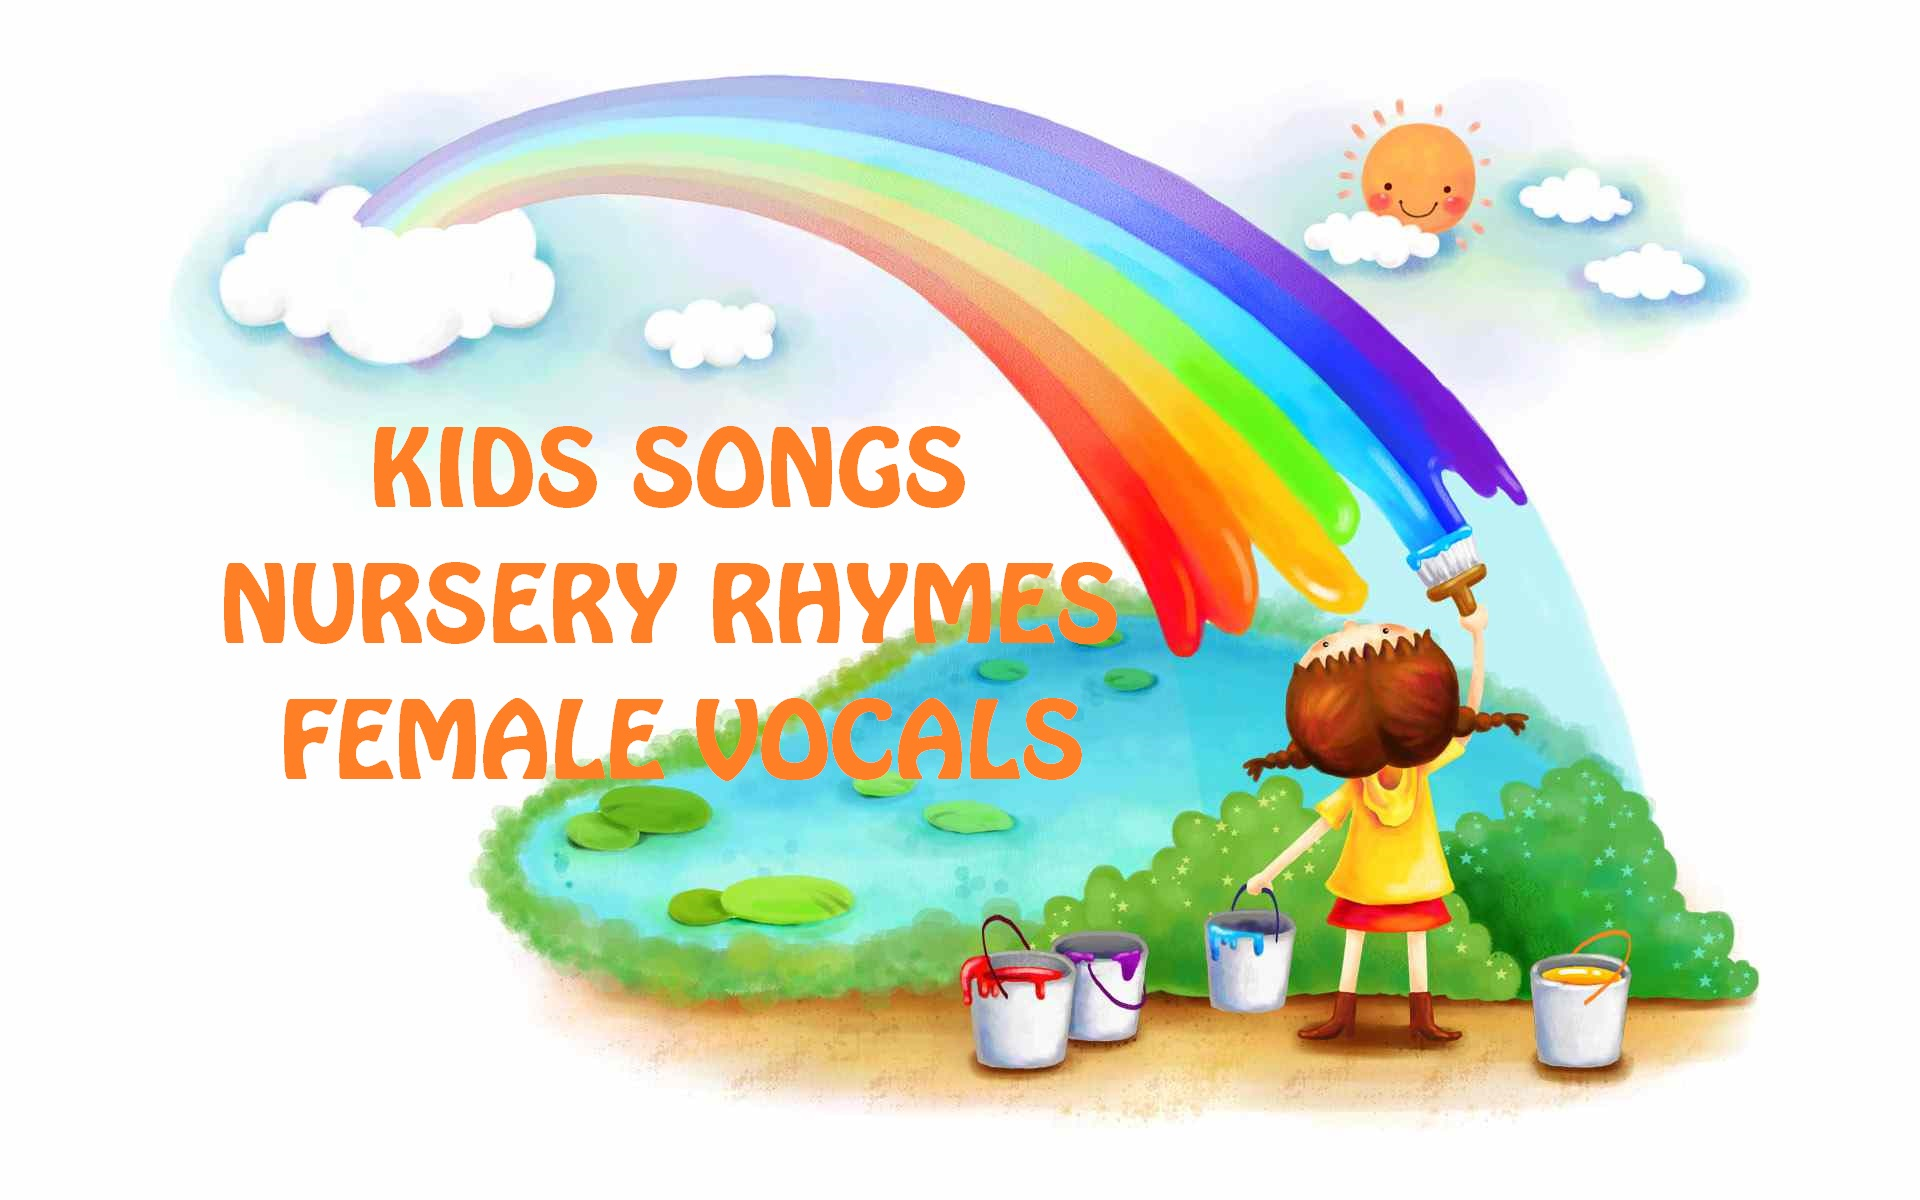 Fully Produce Nursery Rhymes, Children's Songs, Kids Music, Lullabies For You